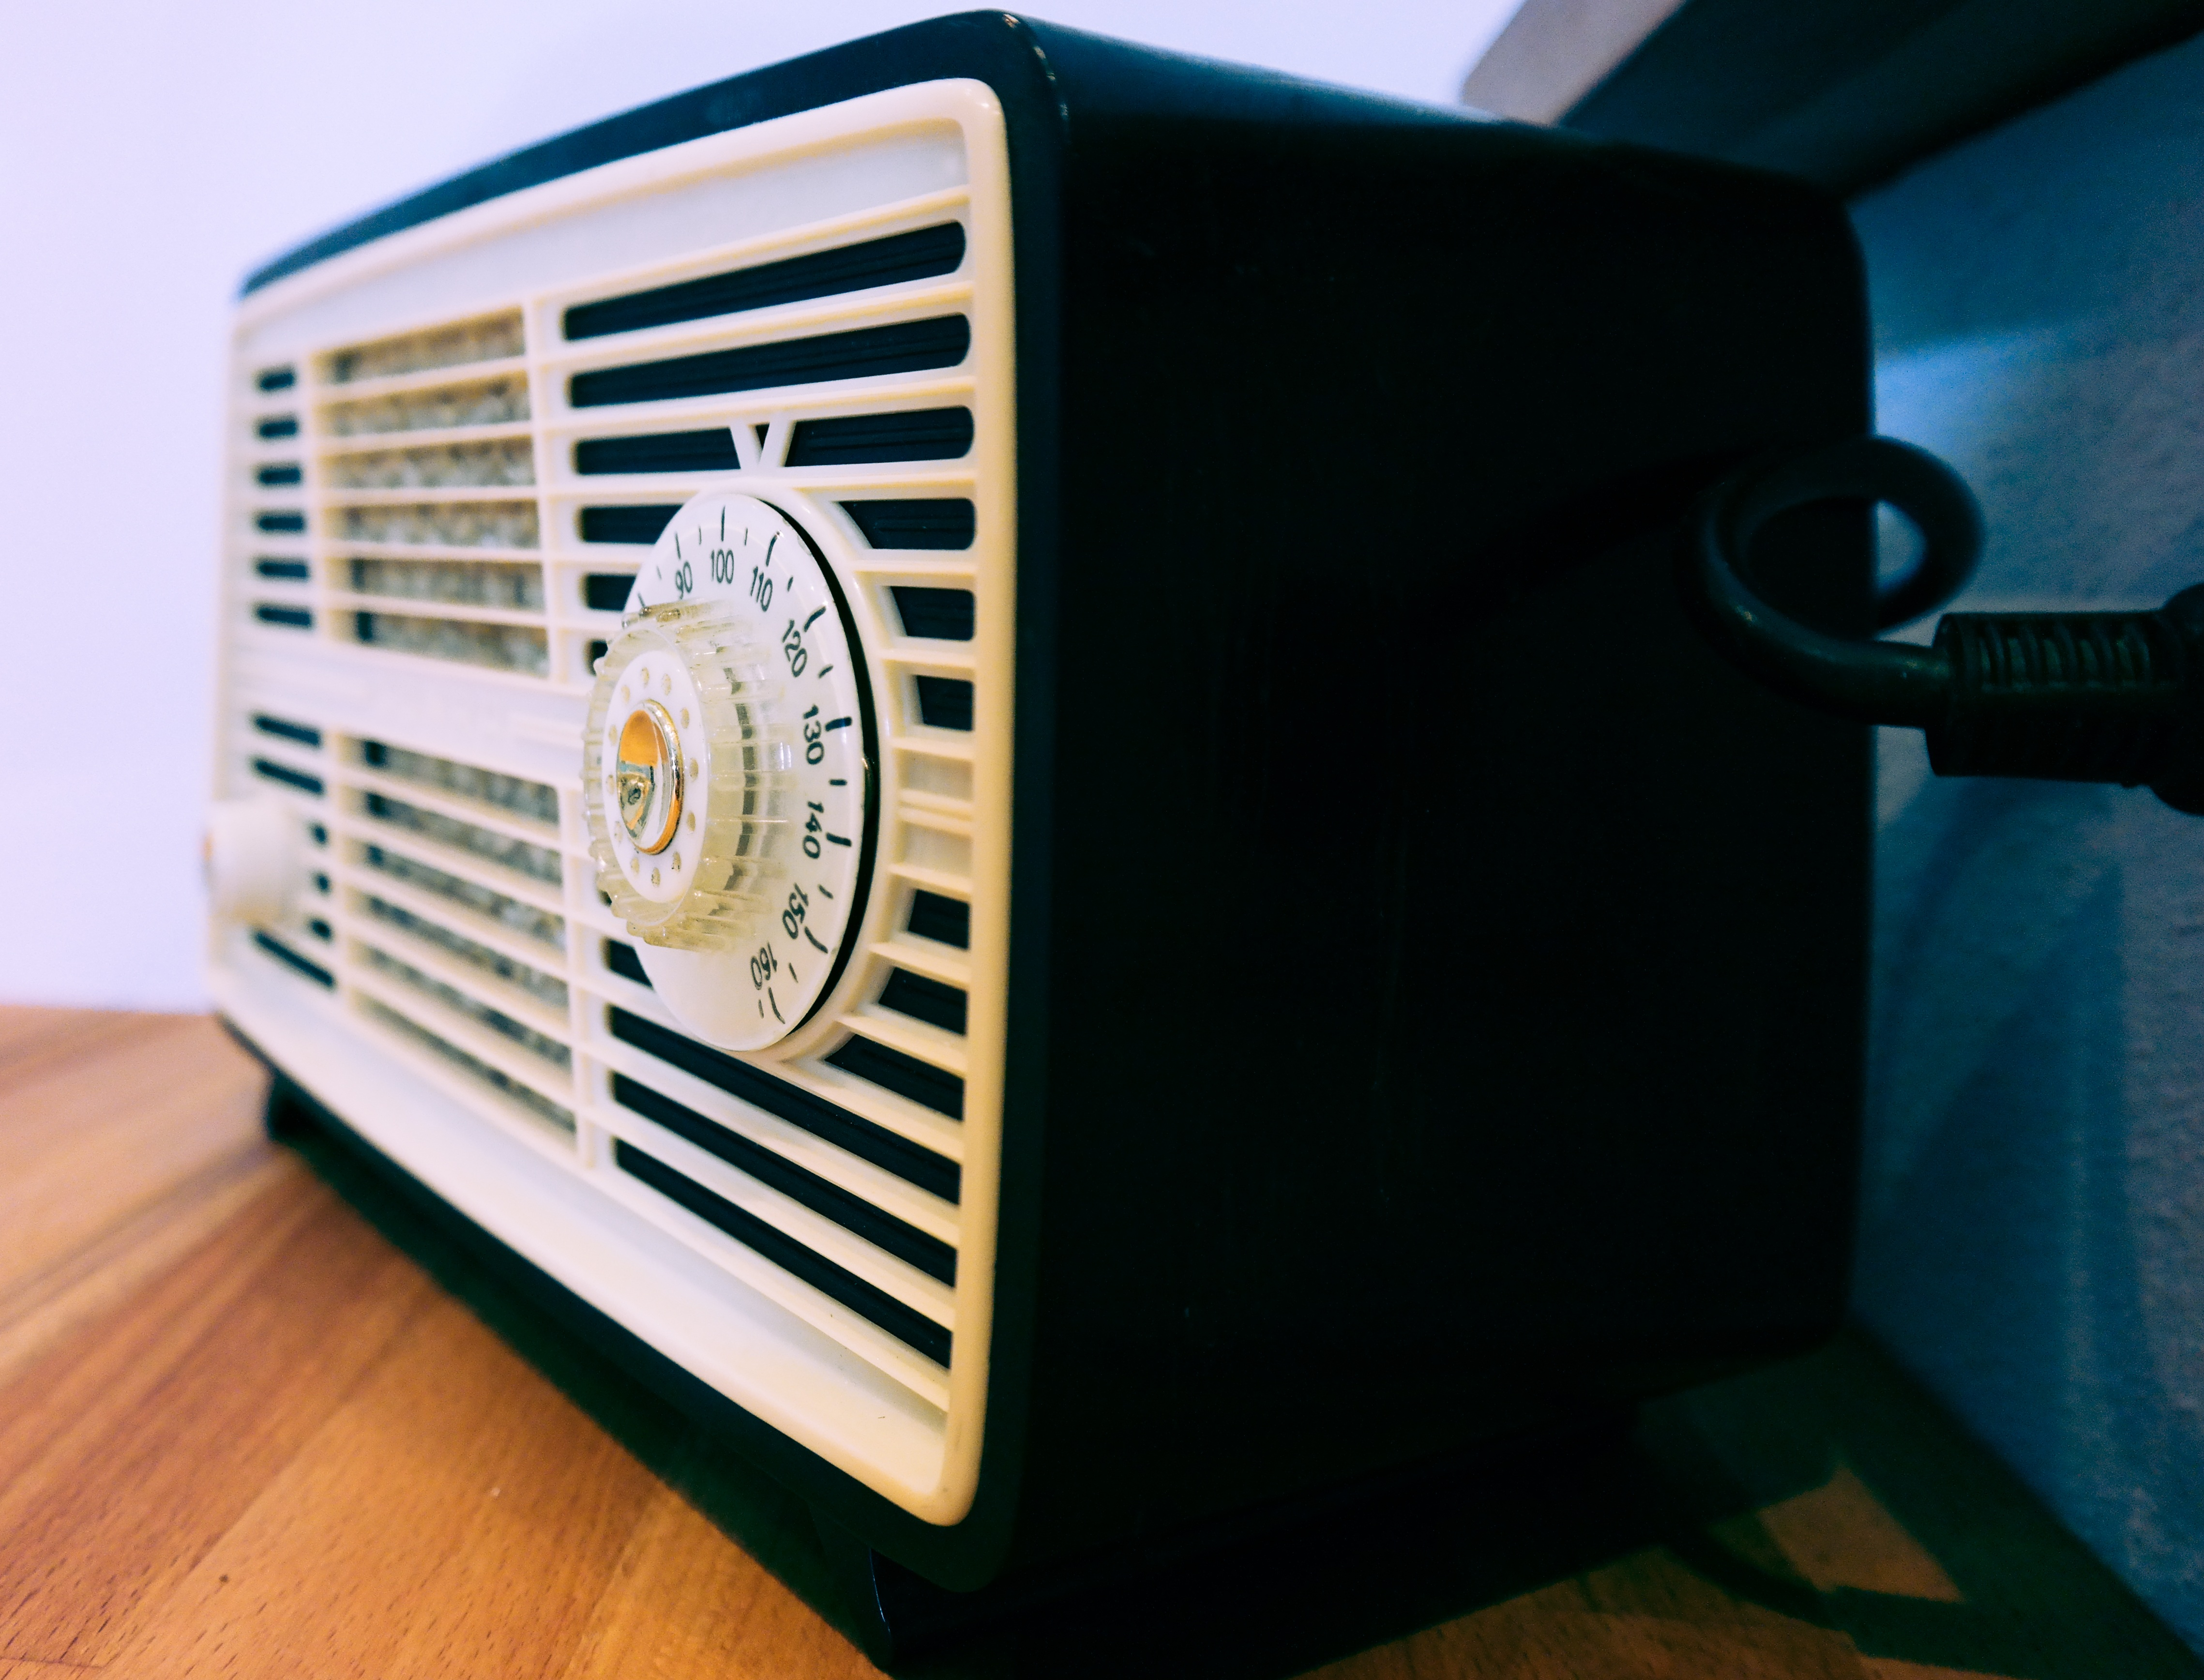 Quelle: https://pixabay.com/en/radio-retro-transistor-radio-old-543122/